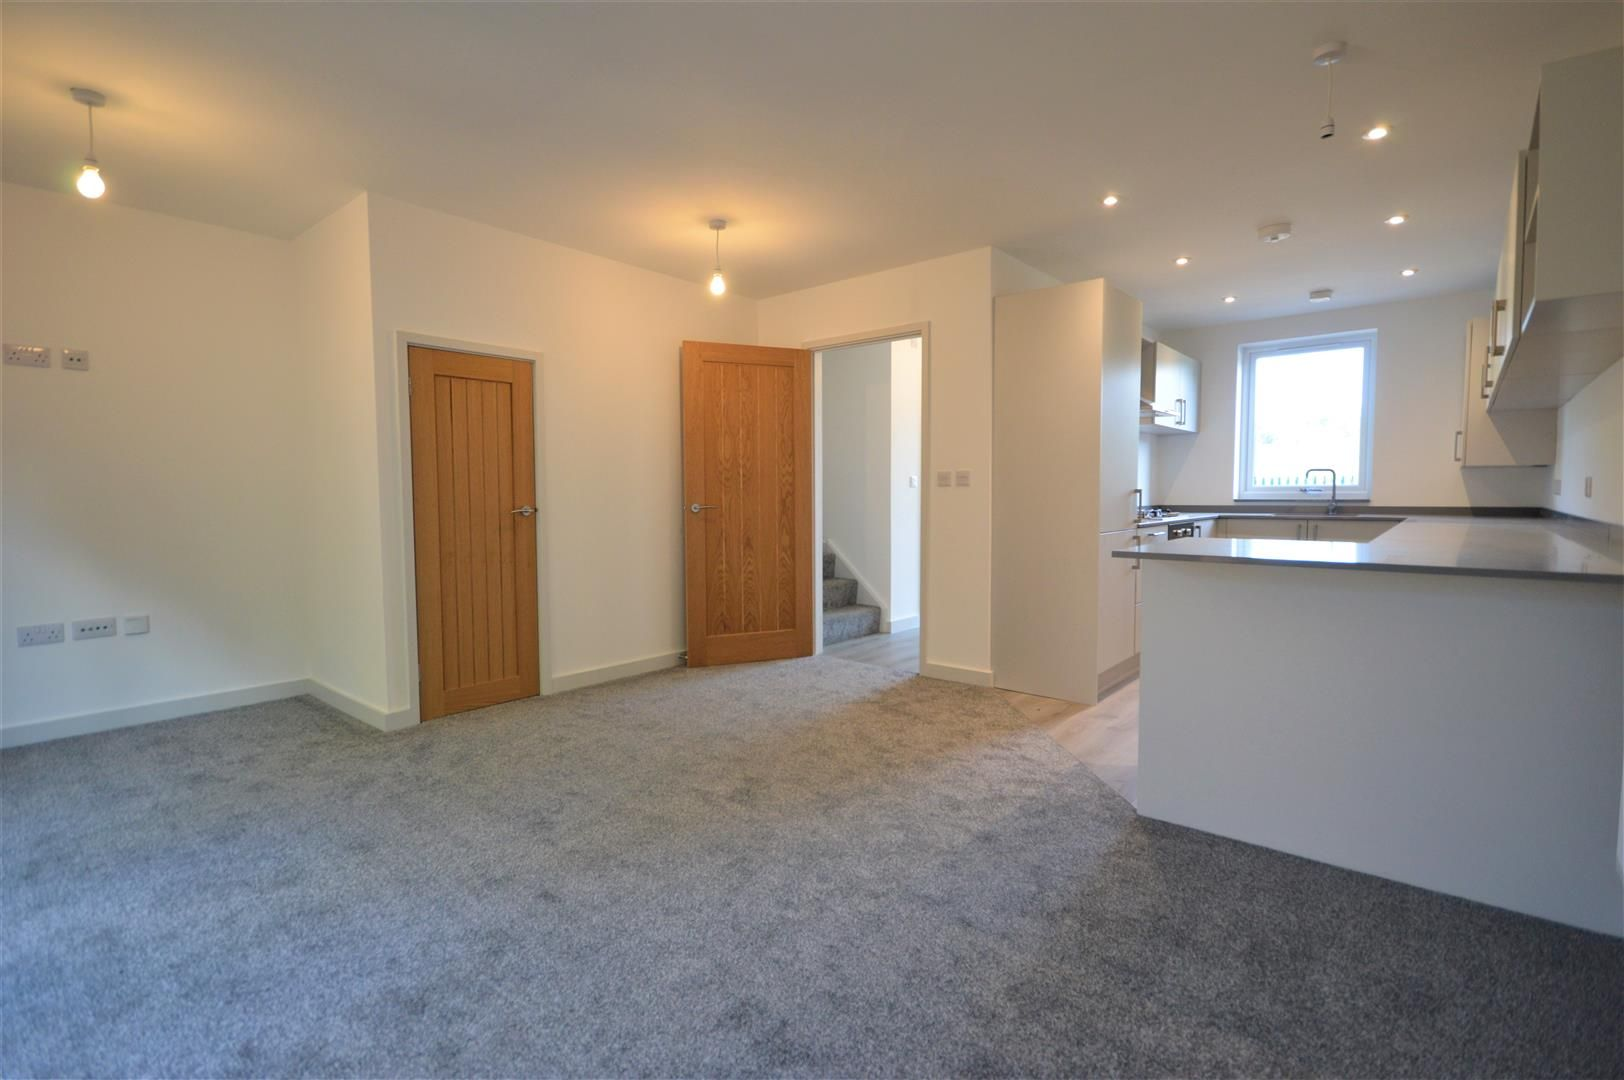 2 bed terraced for sale in Leominster 2